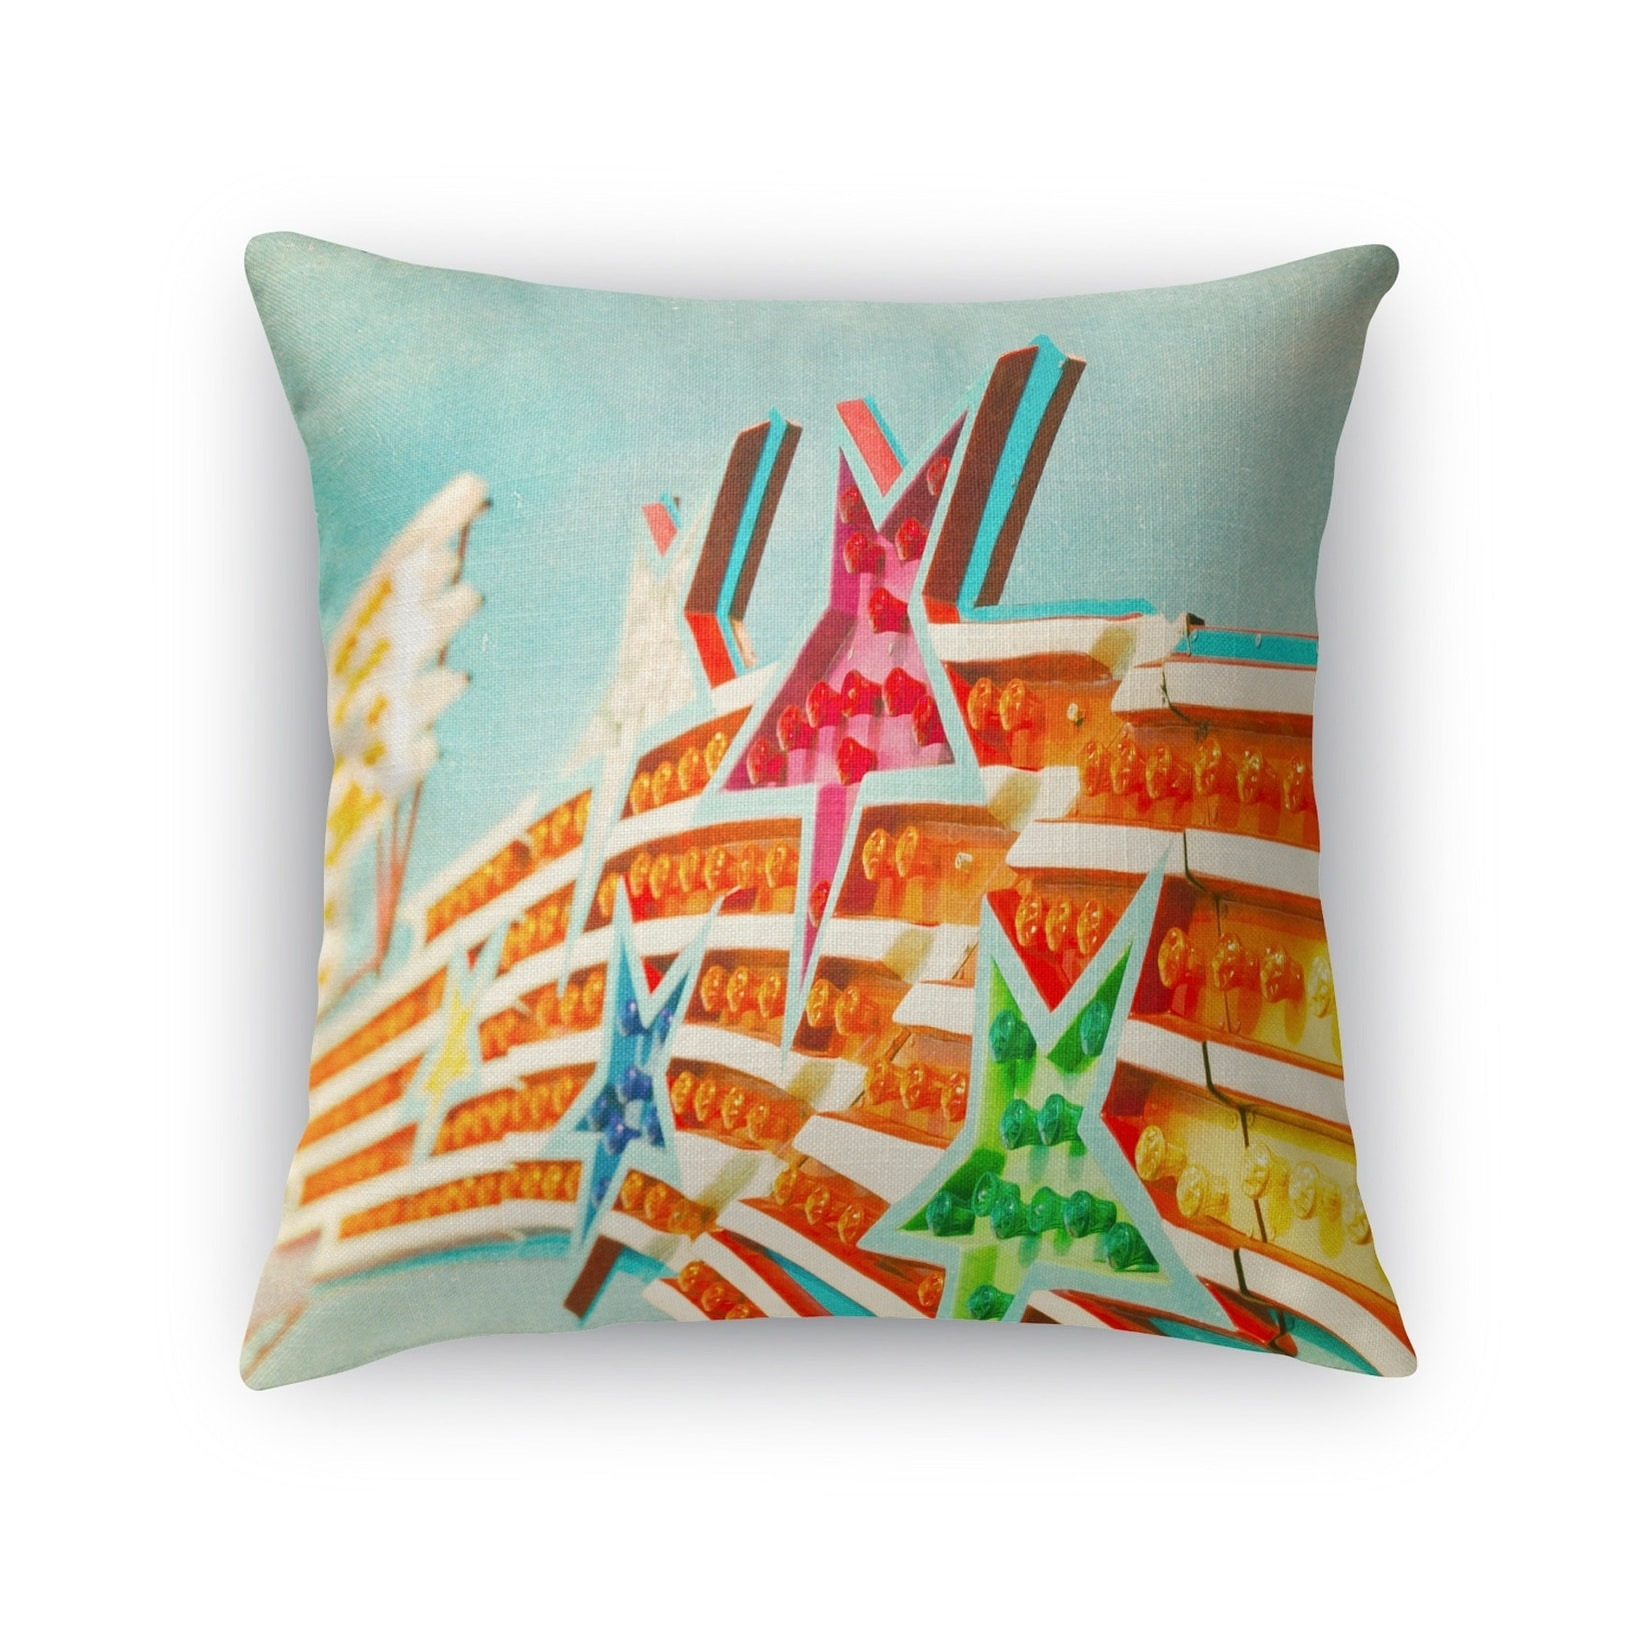 Kavka Designs orange/ blue/ pink/ green shooting stars accent pillow with insert (24 x 24)